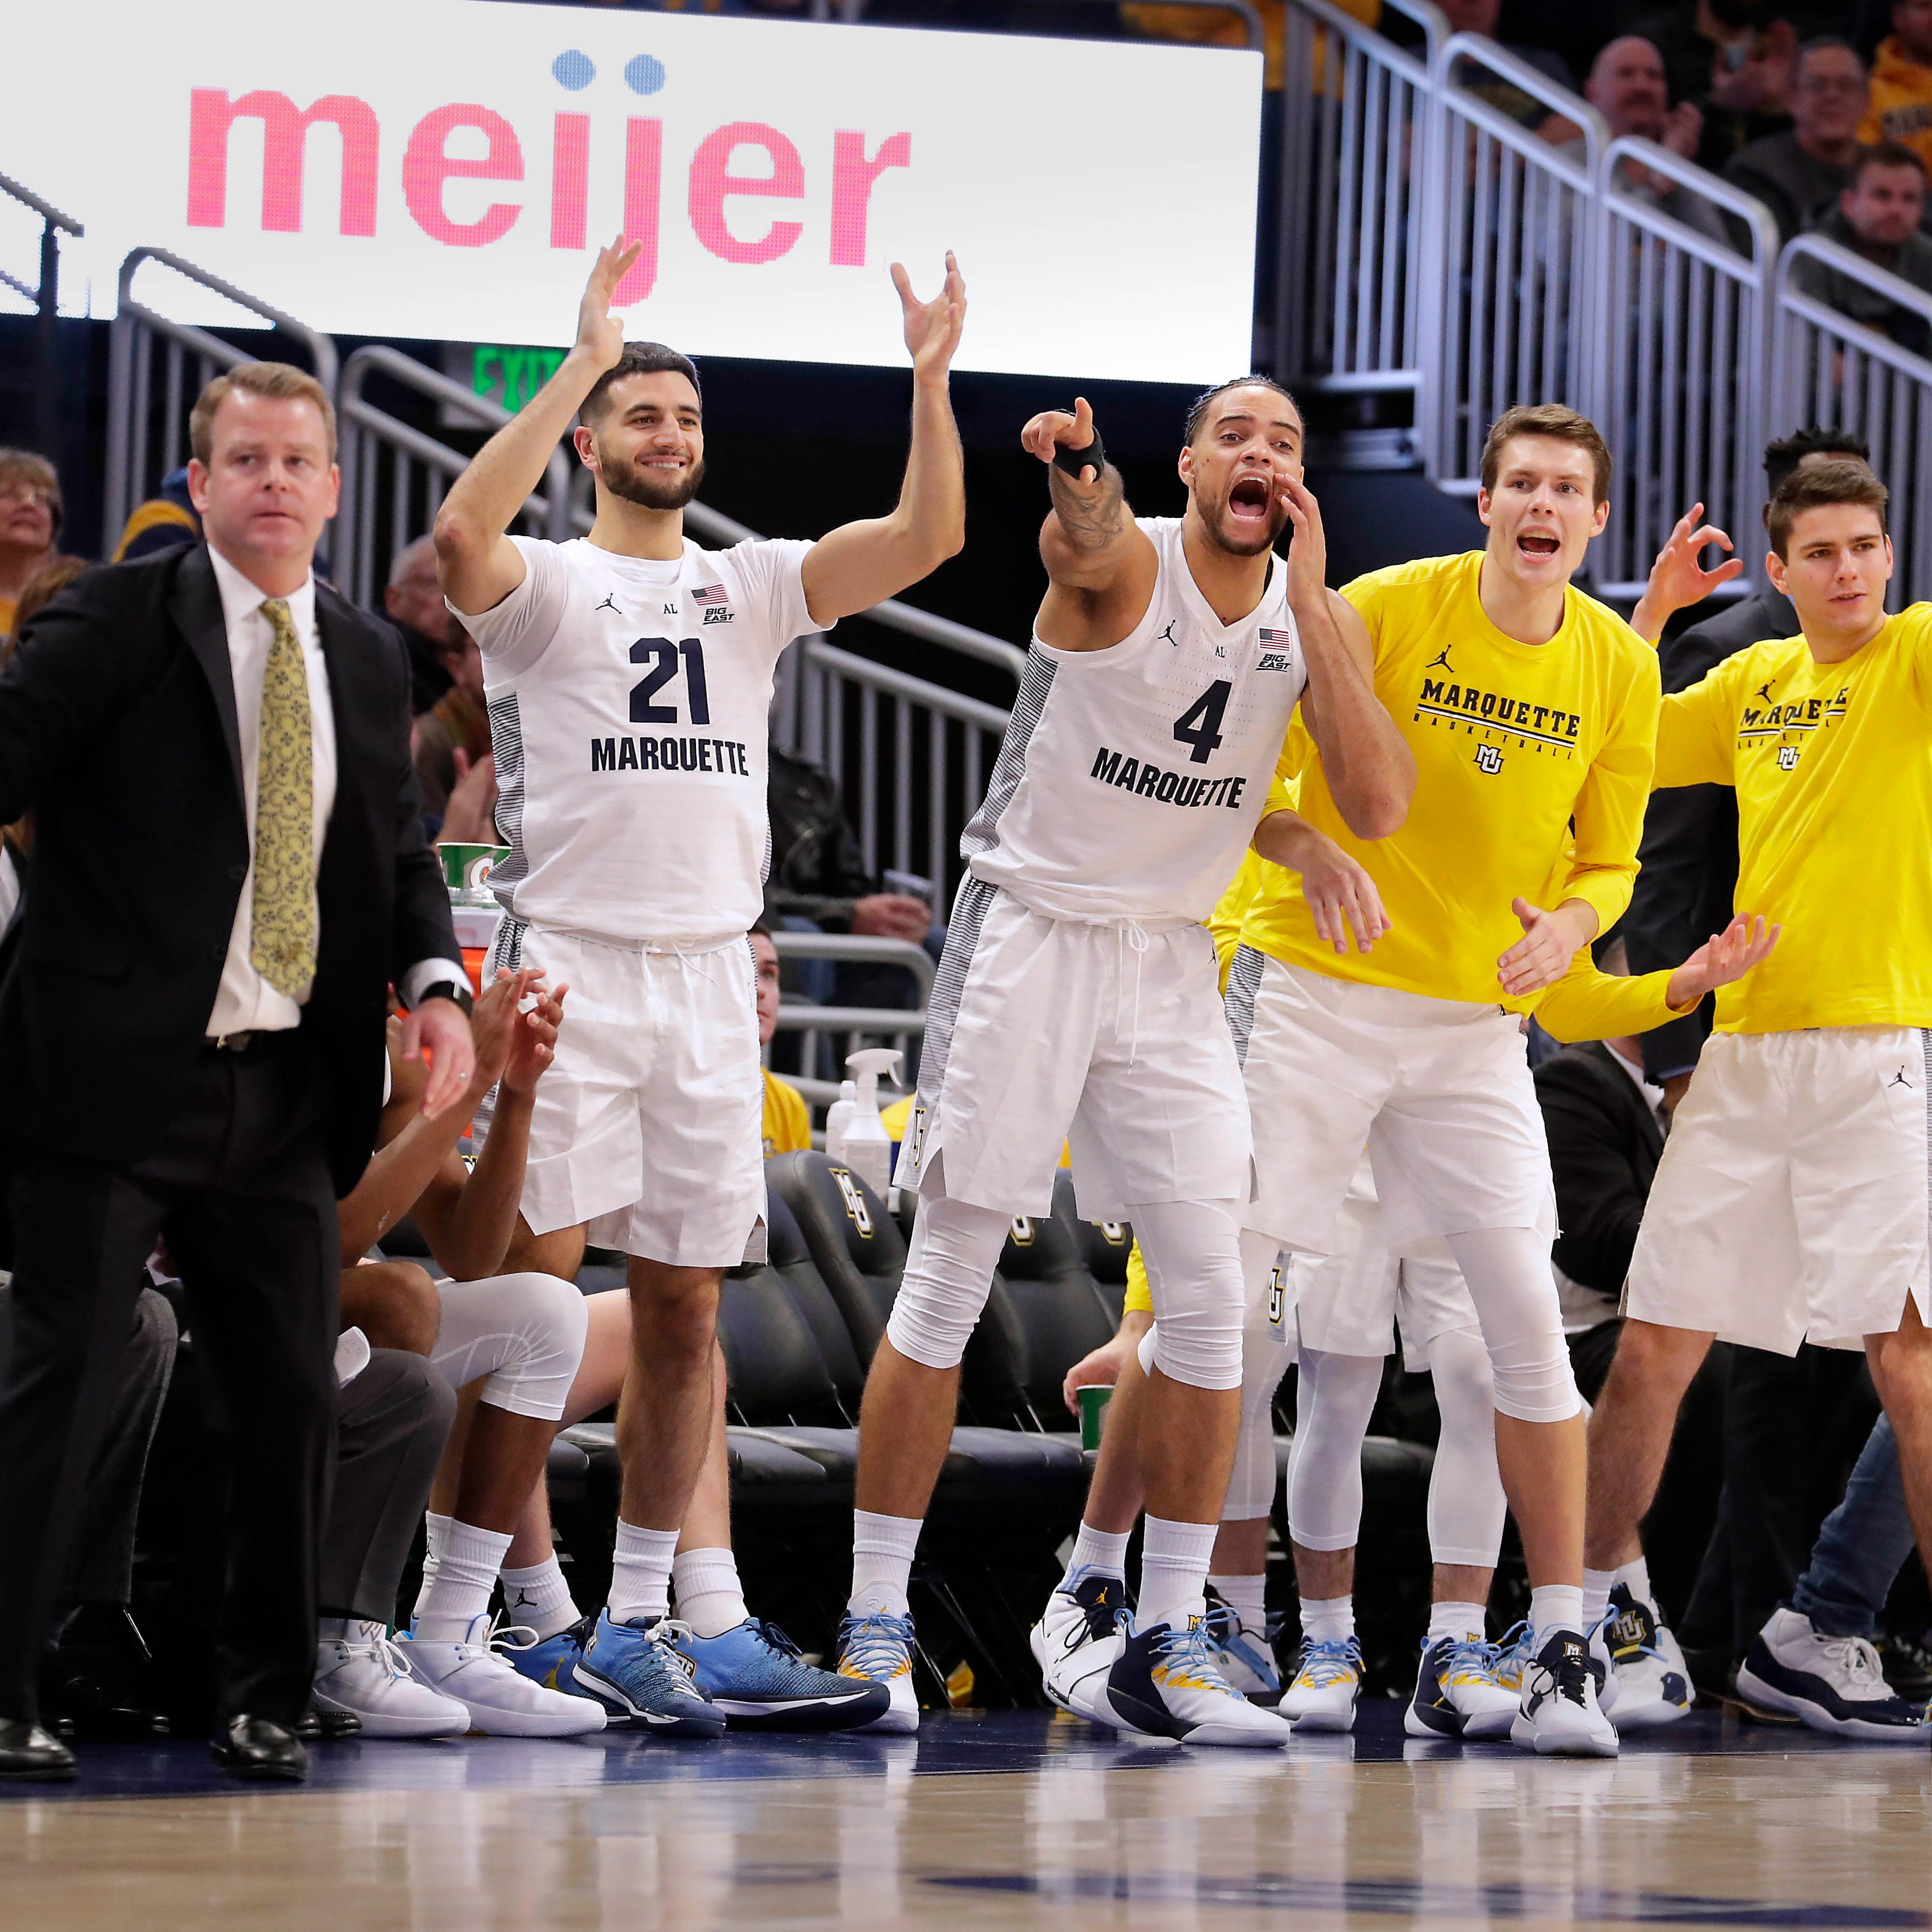 Marquette returns to Associated Press top 25 poll for first time in almost five years